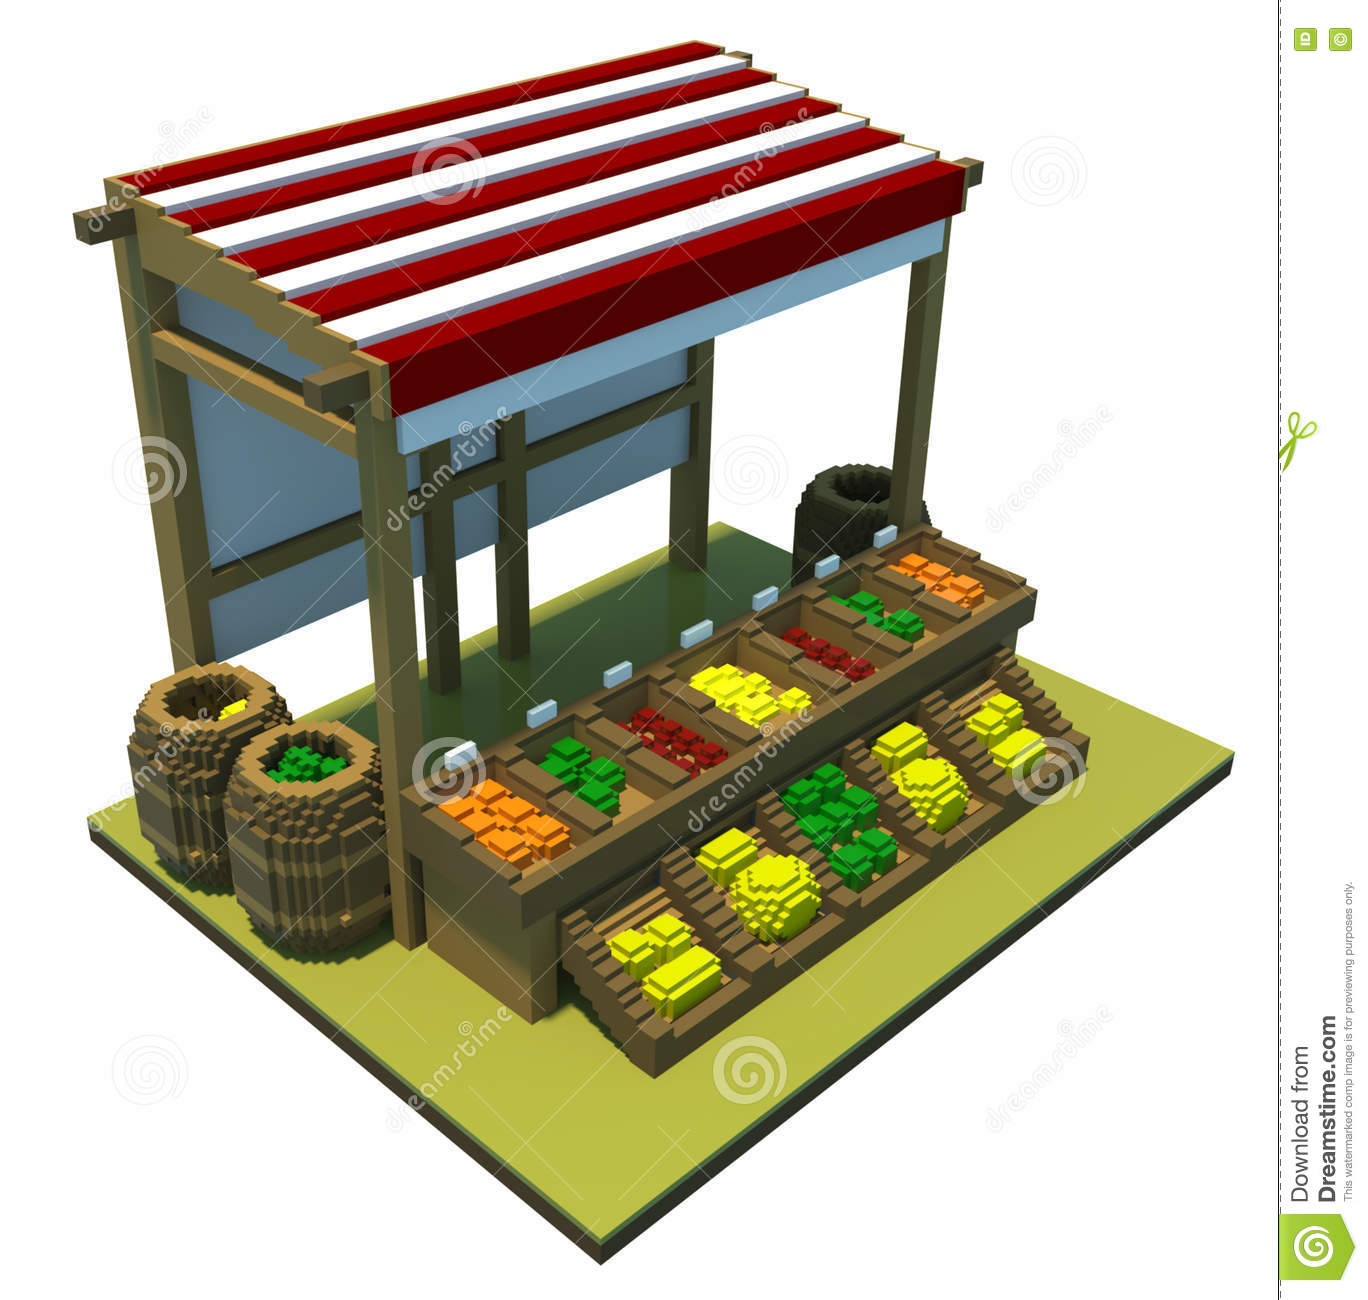 market-stand-d-art-picture-sellling-frui